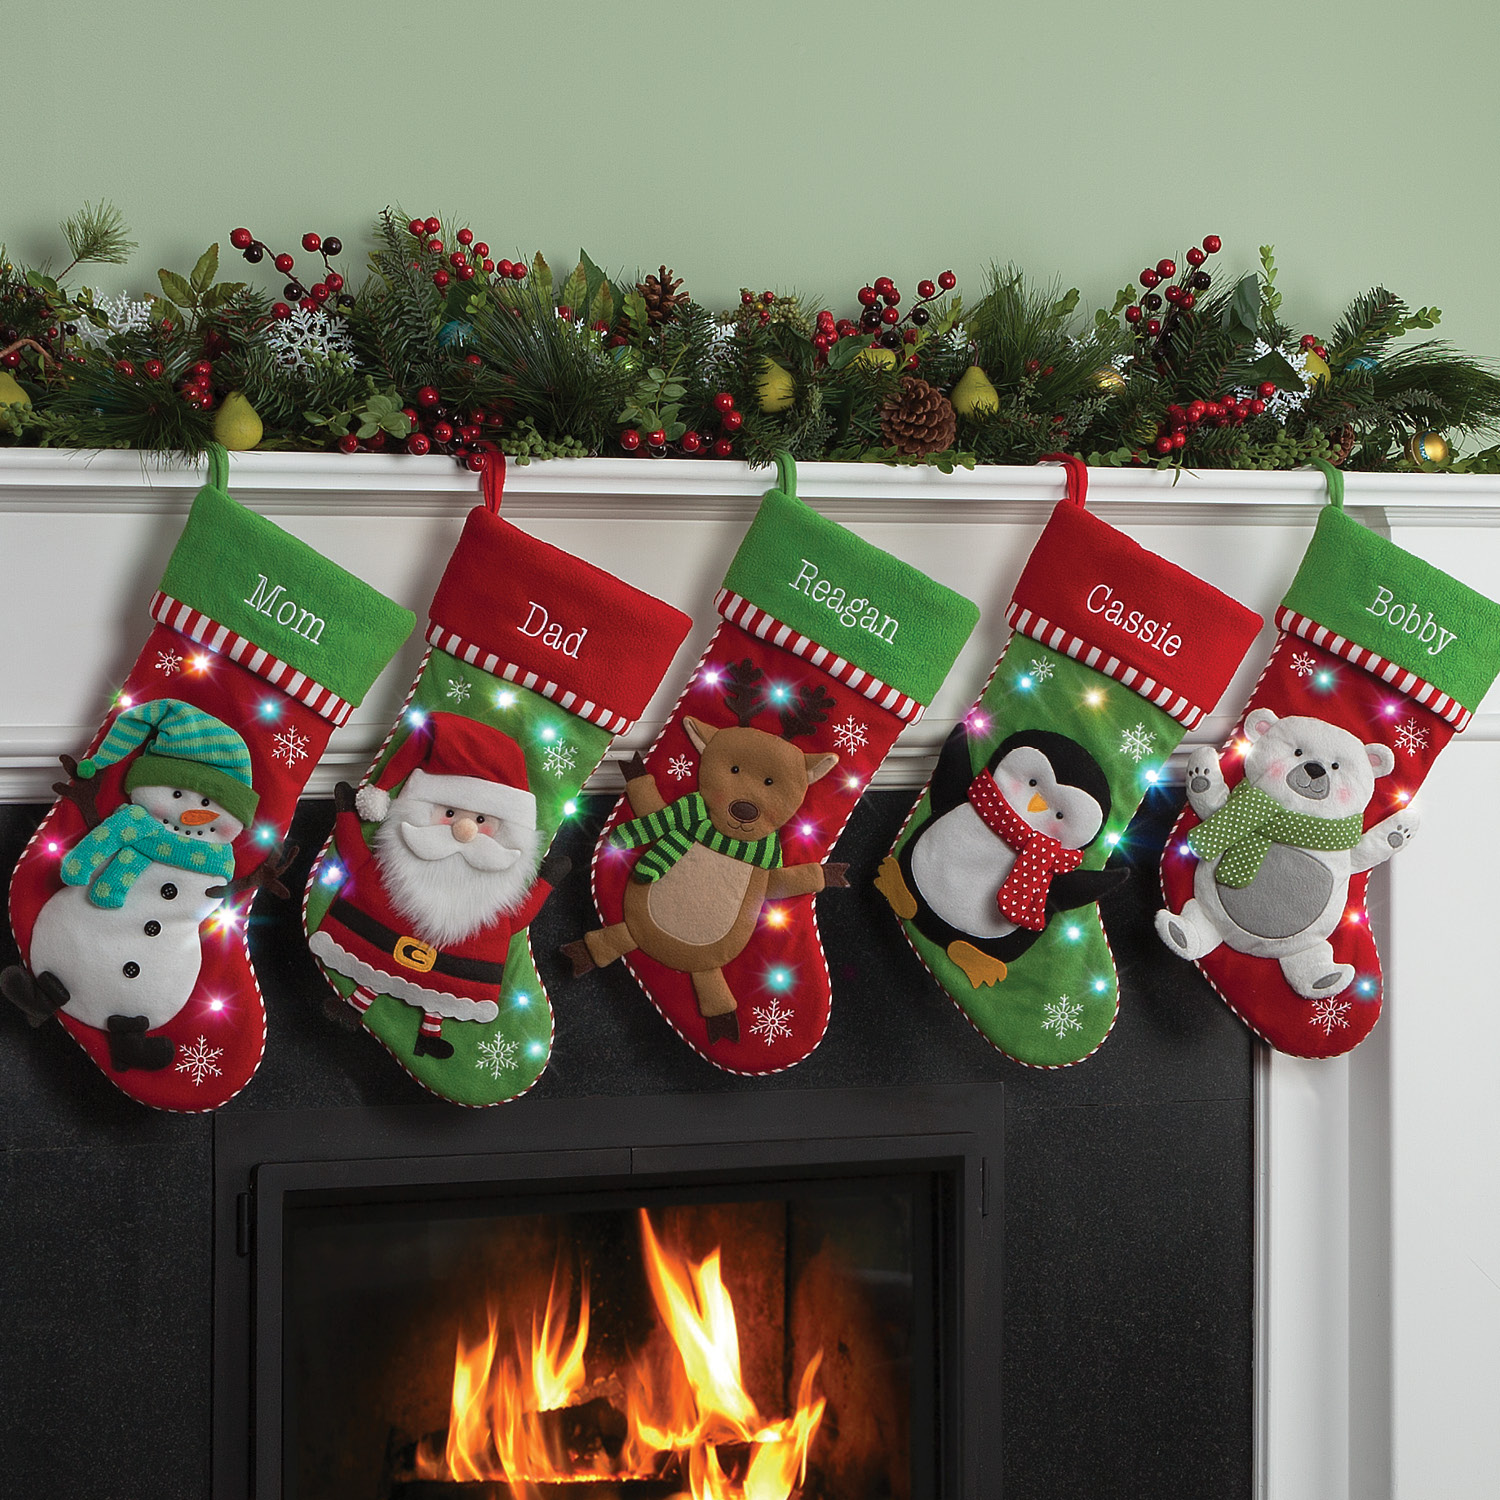 Personalized LED Light Up Christmas Stocking with 5 Styles to Choose From